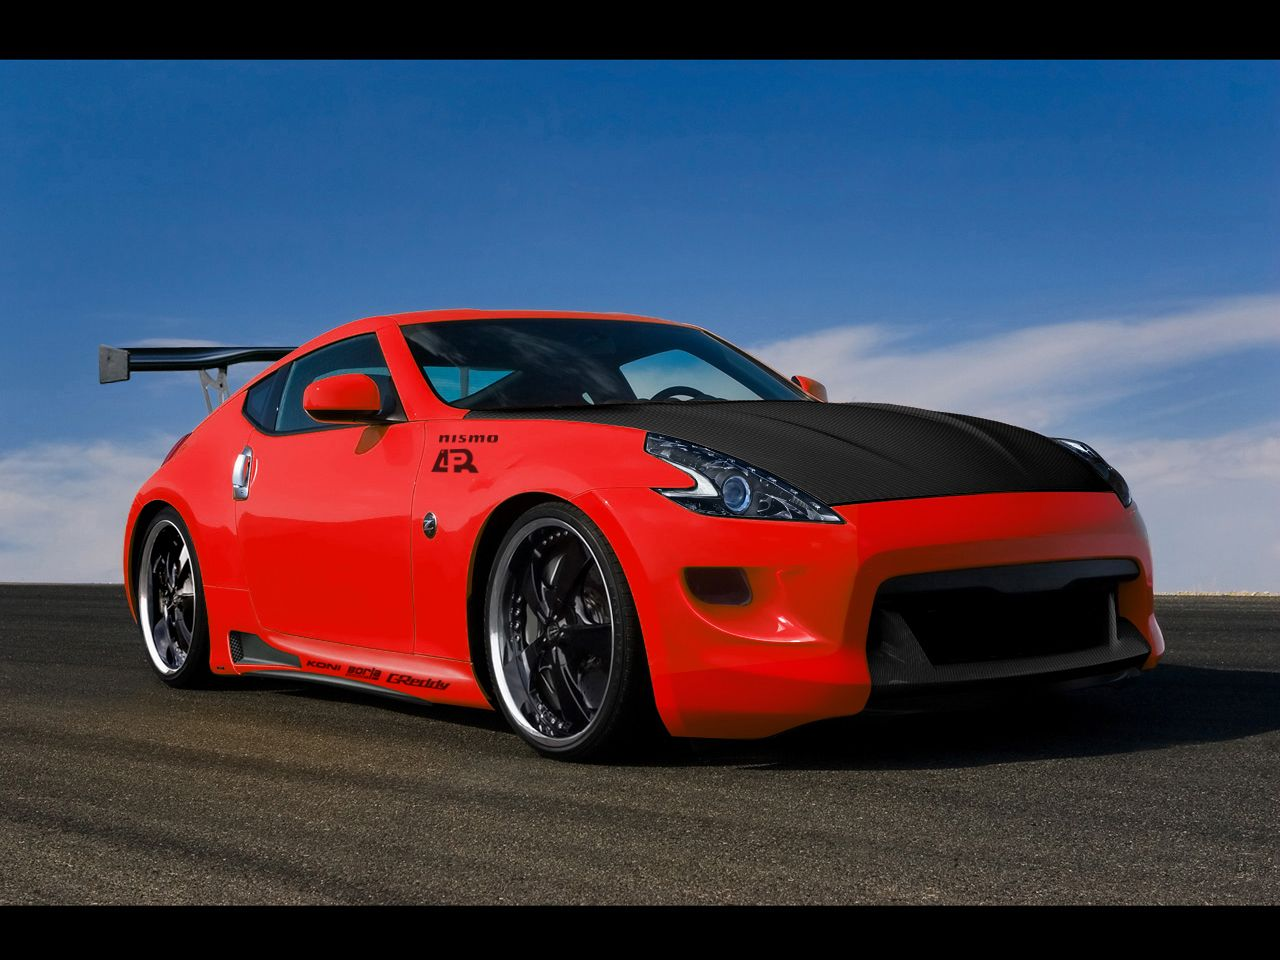 Gentil Download Free Nissan Z Wallpapers For Your Mobile Phone By